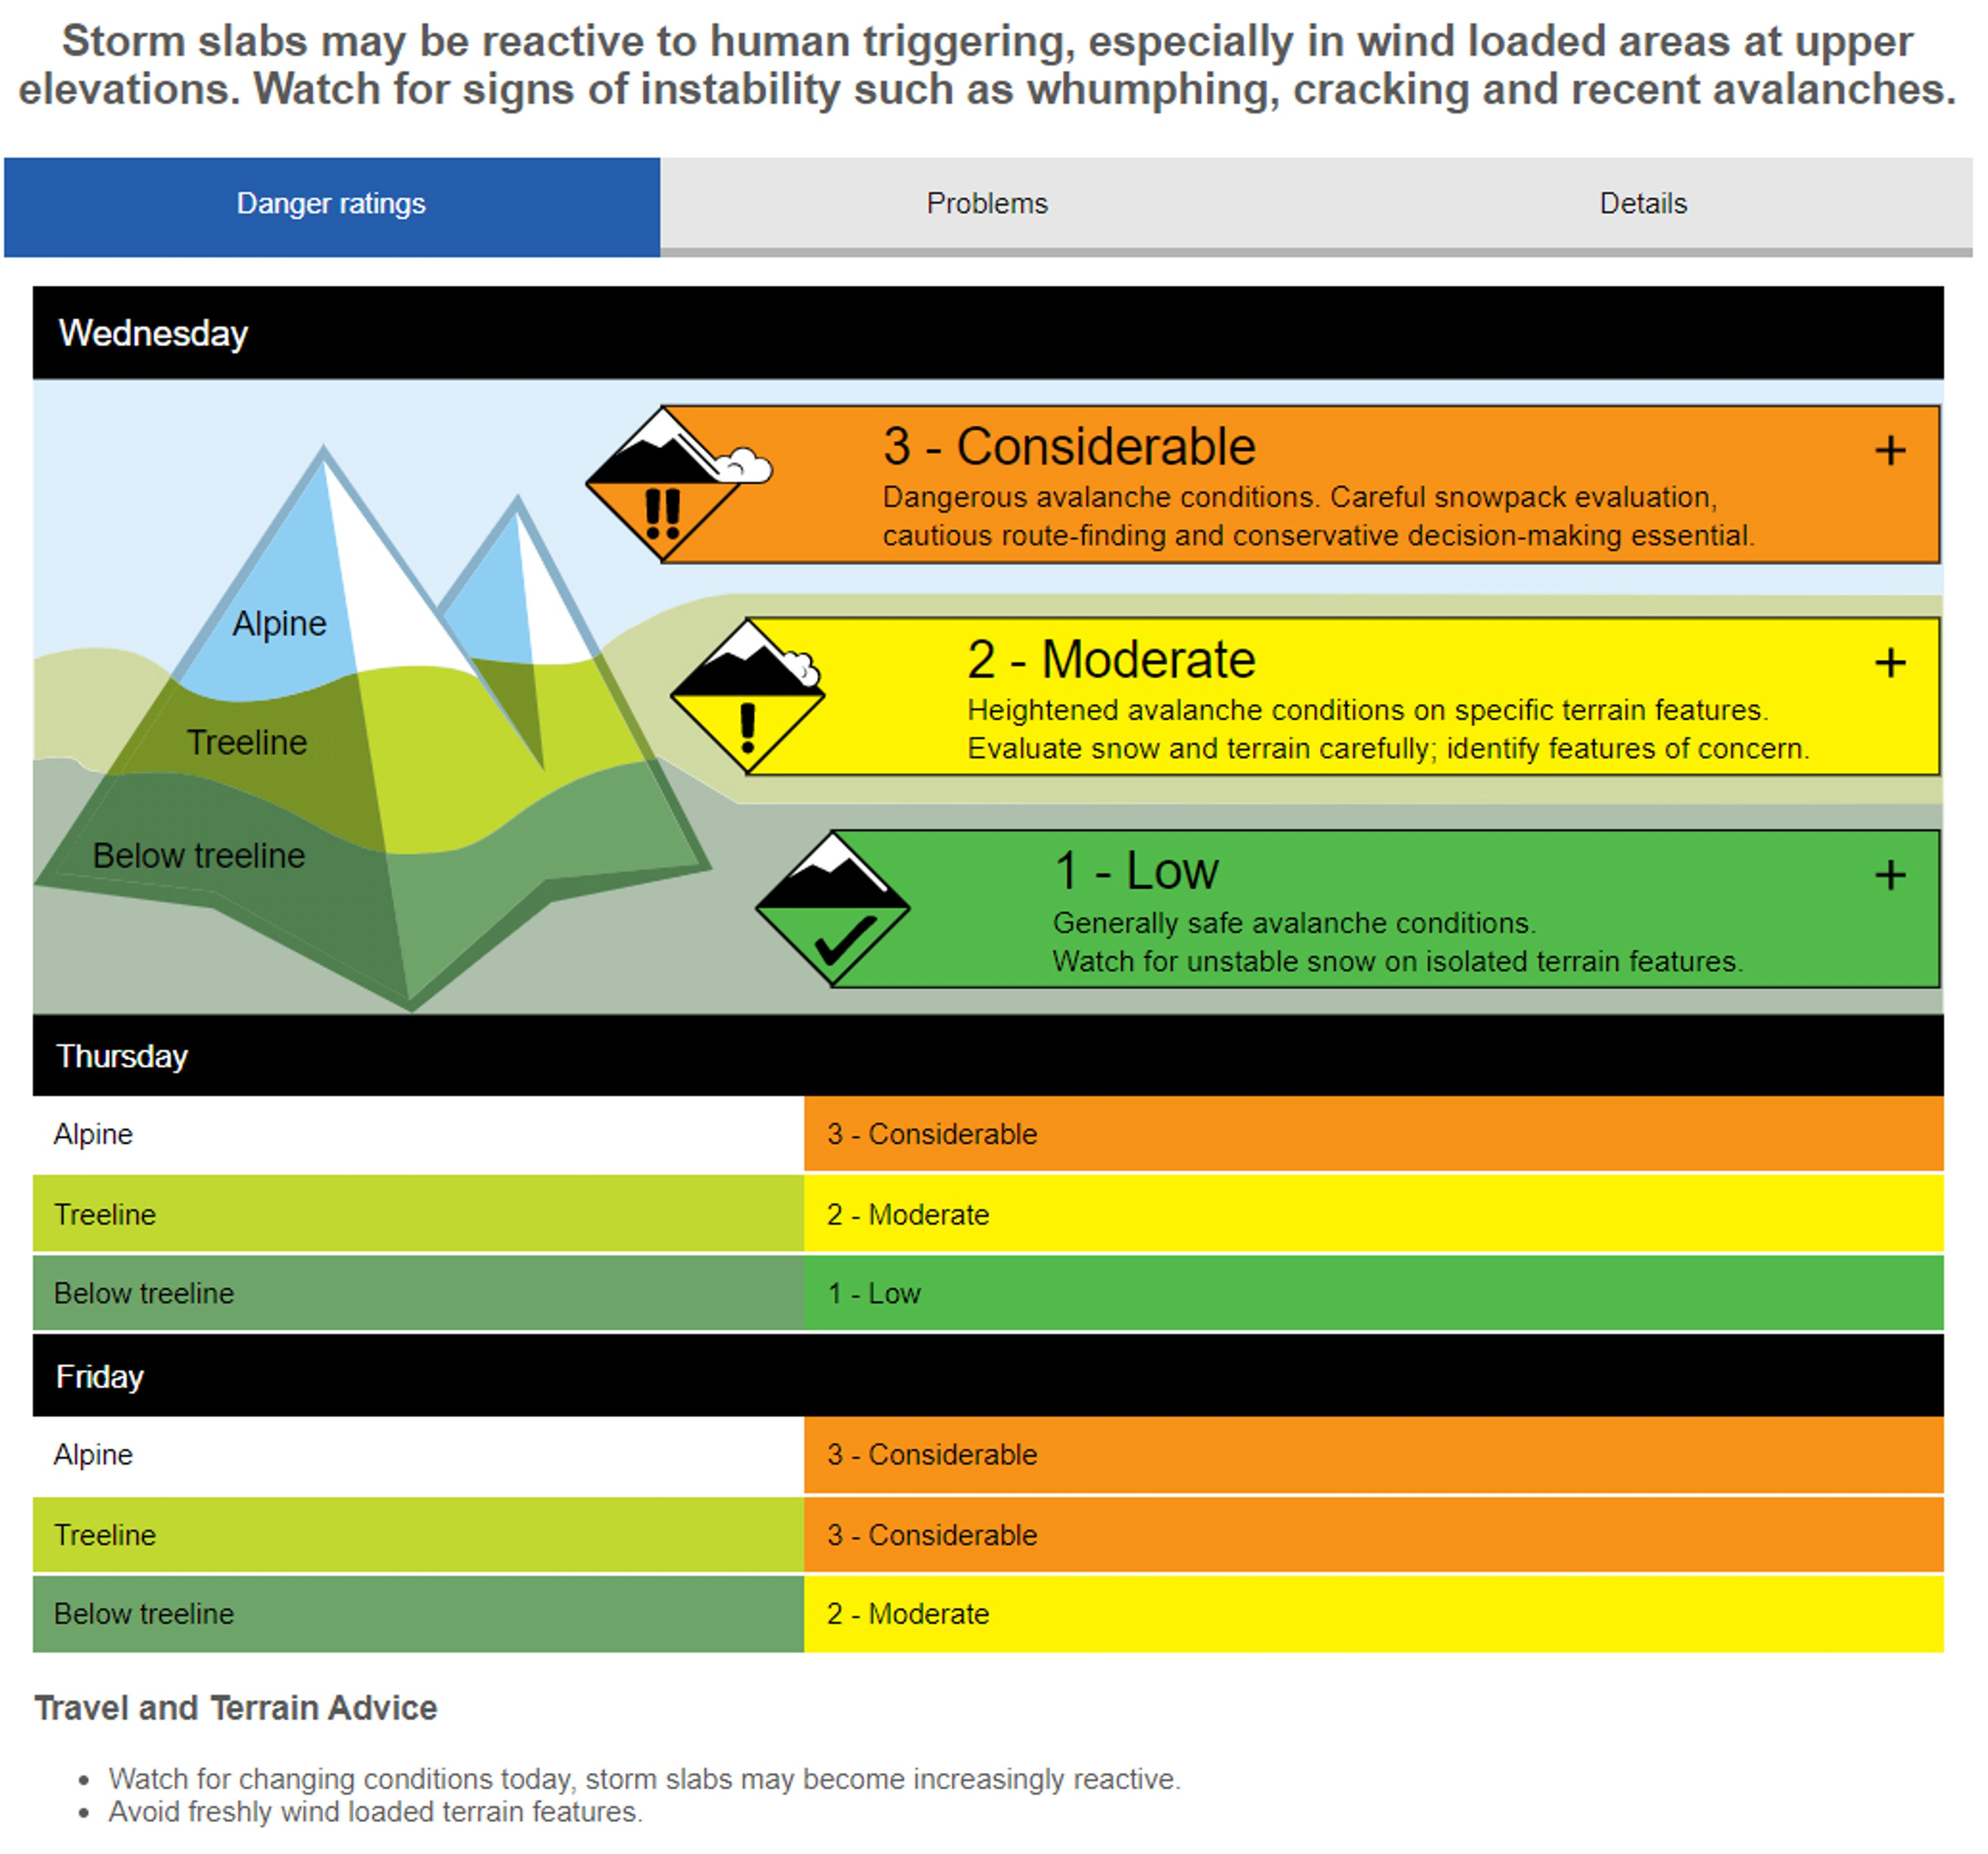 The front page of the avalanche forecast includes a brief introduction, danger ratings, and terrain and travel advice.